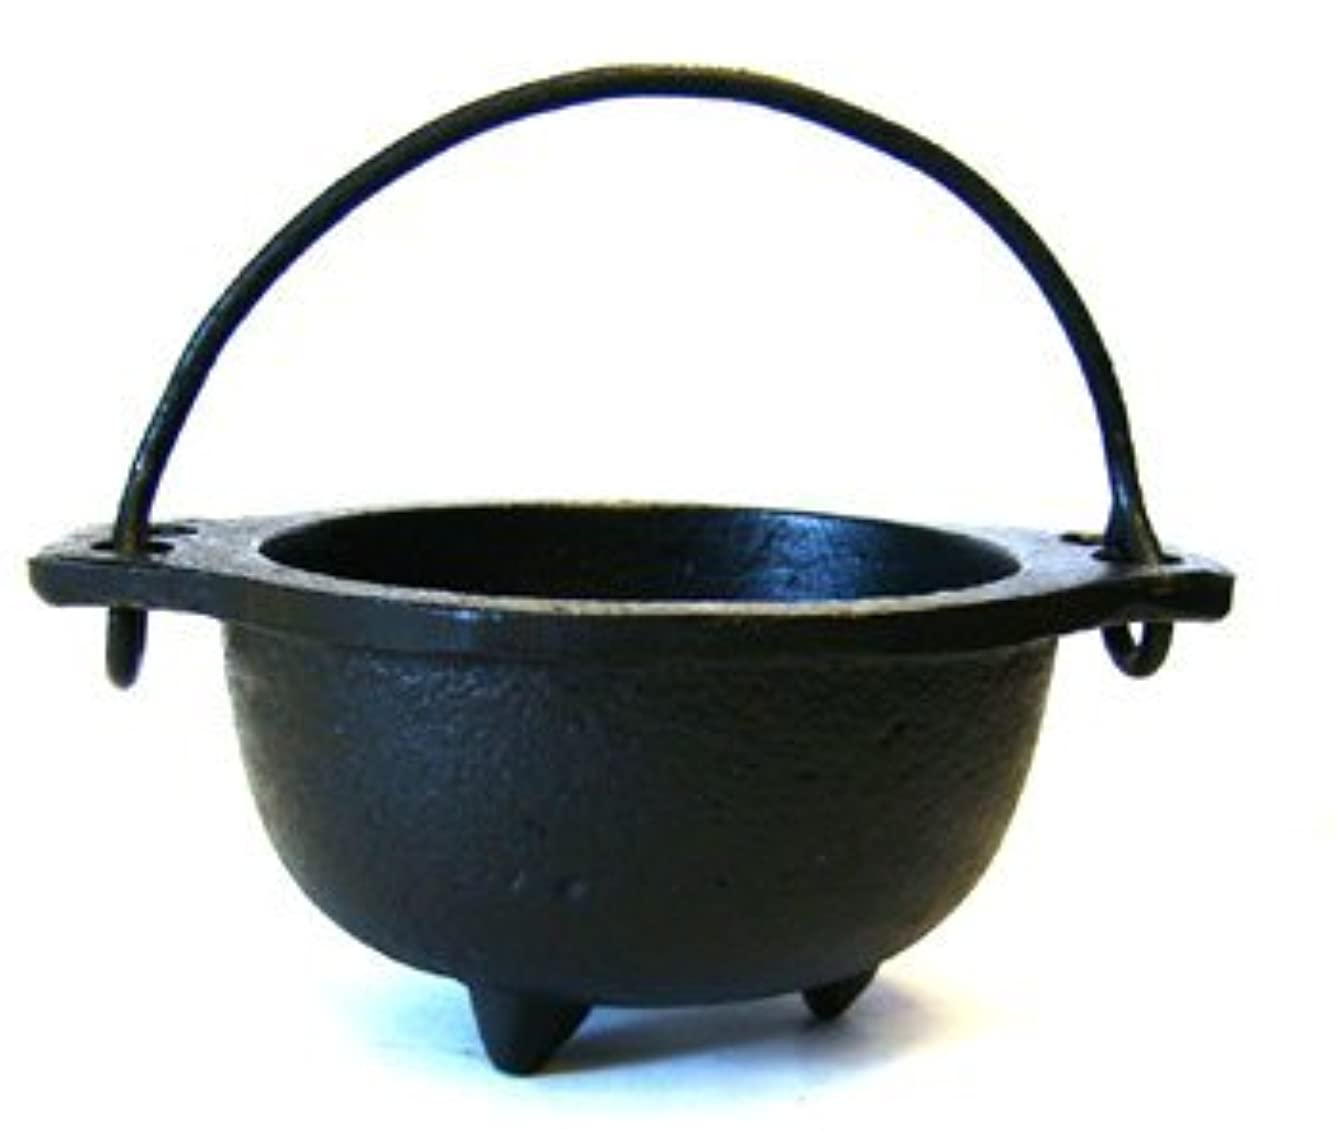 ご予約言い直すブラウザ(6.4cm Diameter) - Cast Iron Cauldron w/handle, ideal for smudging, incense burning, ritual purpose, decoration...